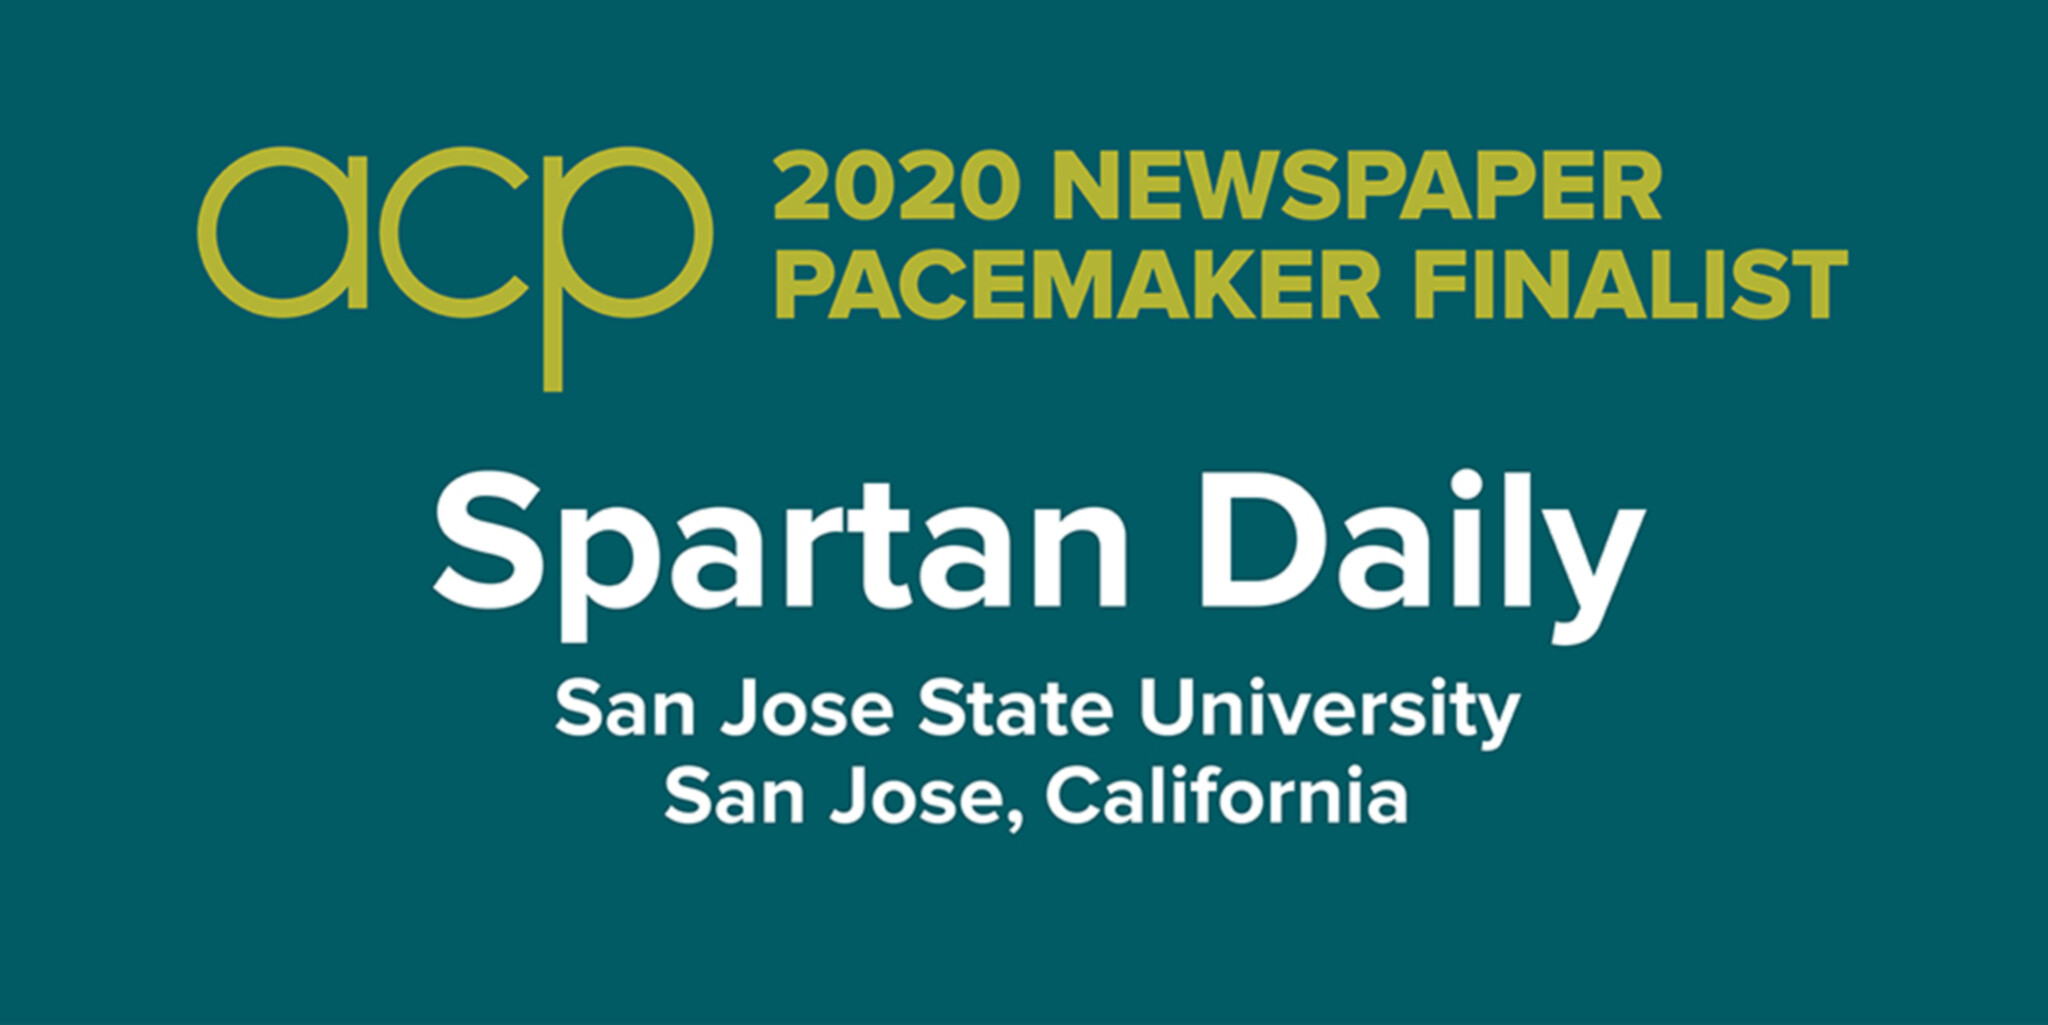 Spartan Daily is a Pacemaker finalist